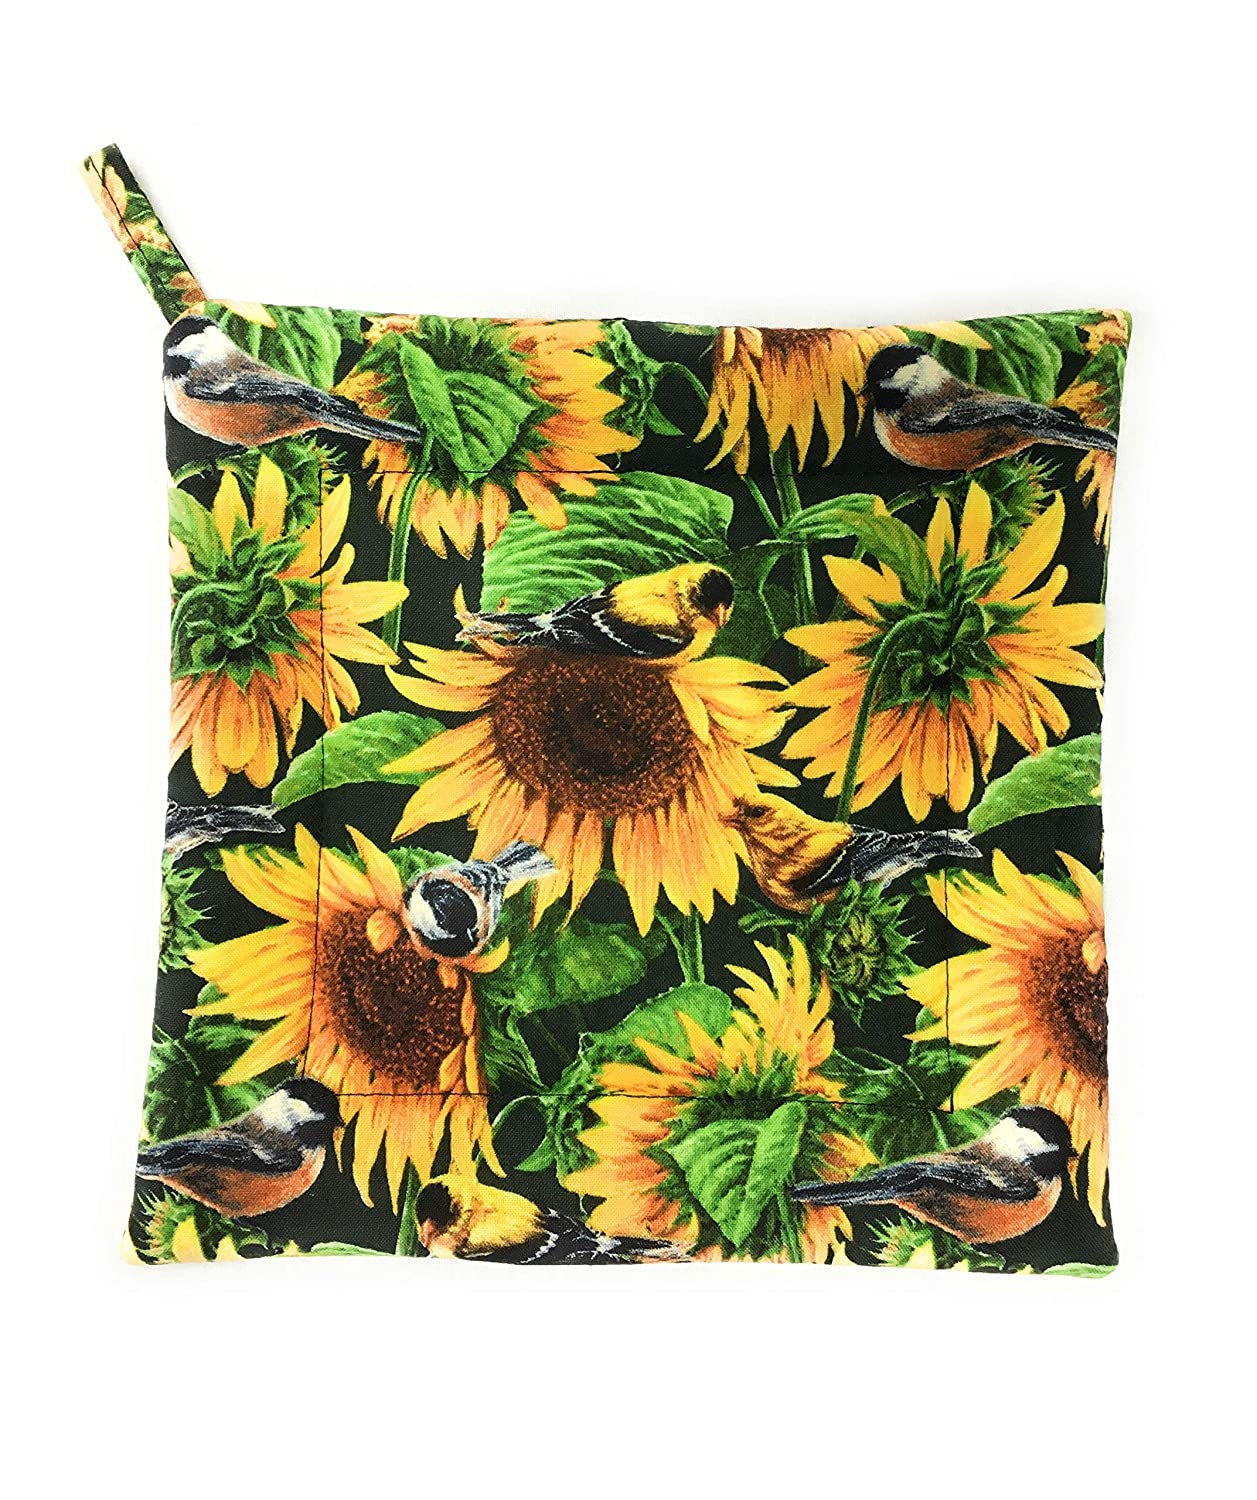 Sunflowers and Birds with Green Leaves Leaf Hot Pot Pan Plate Holder Hot Pad Trivet